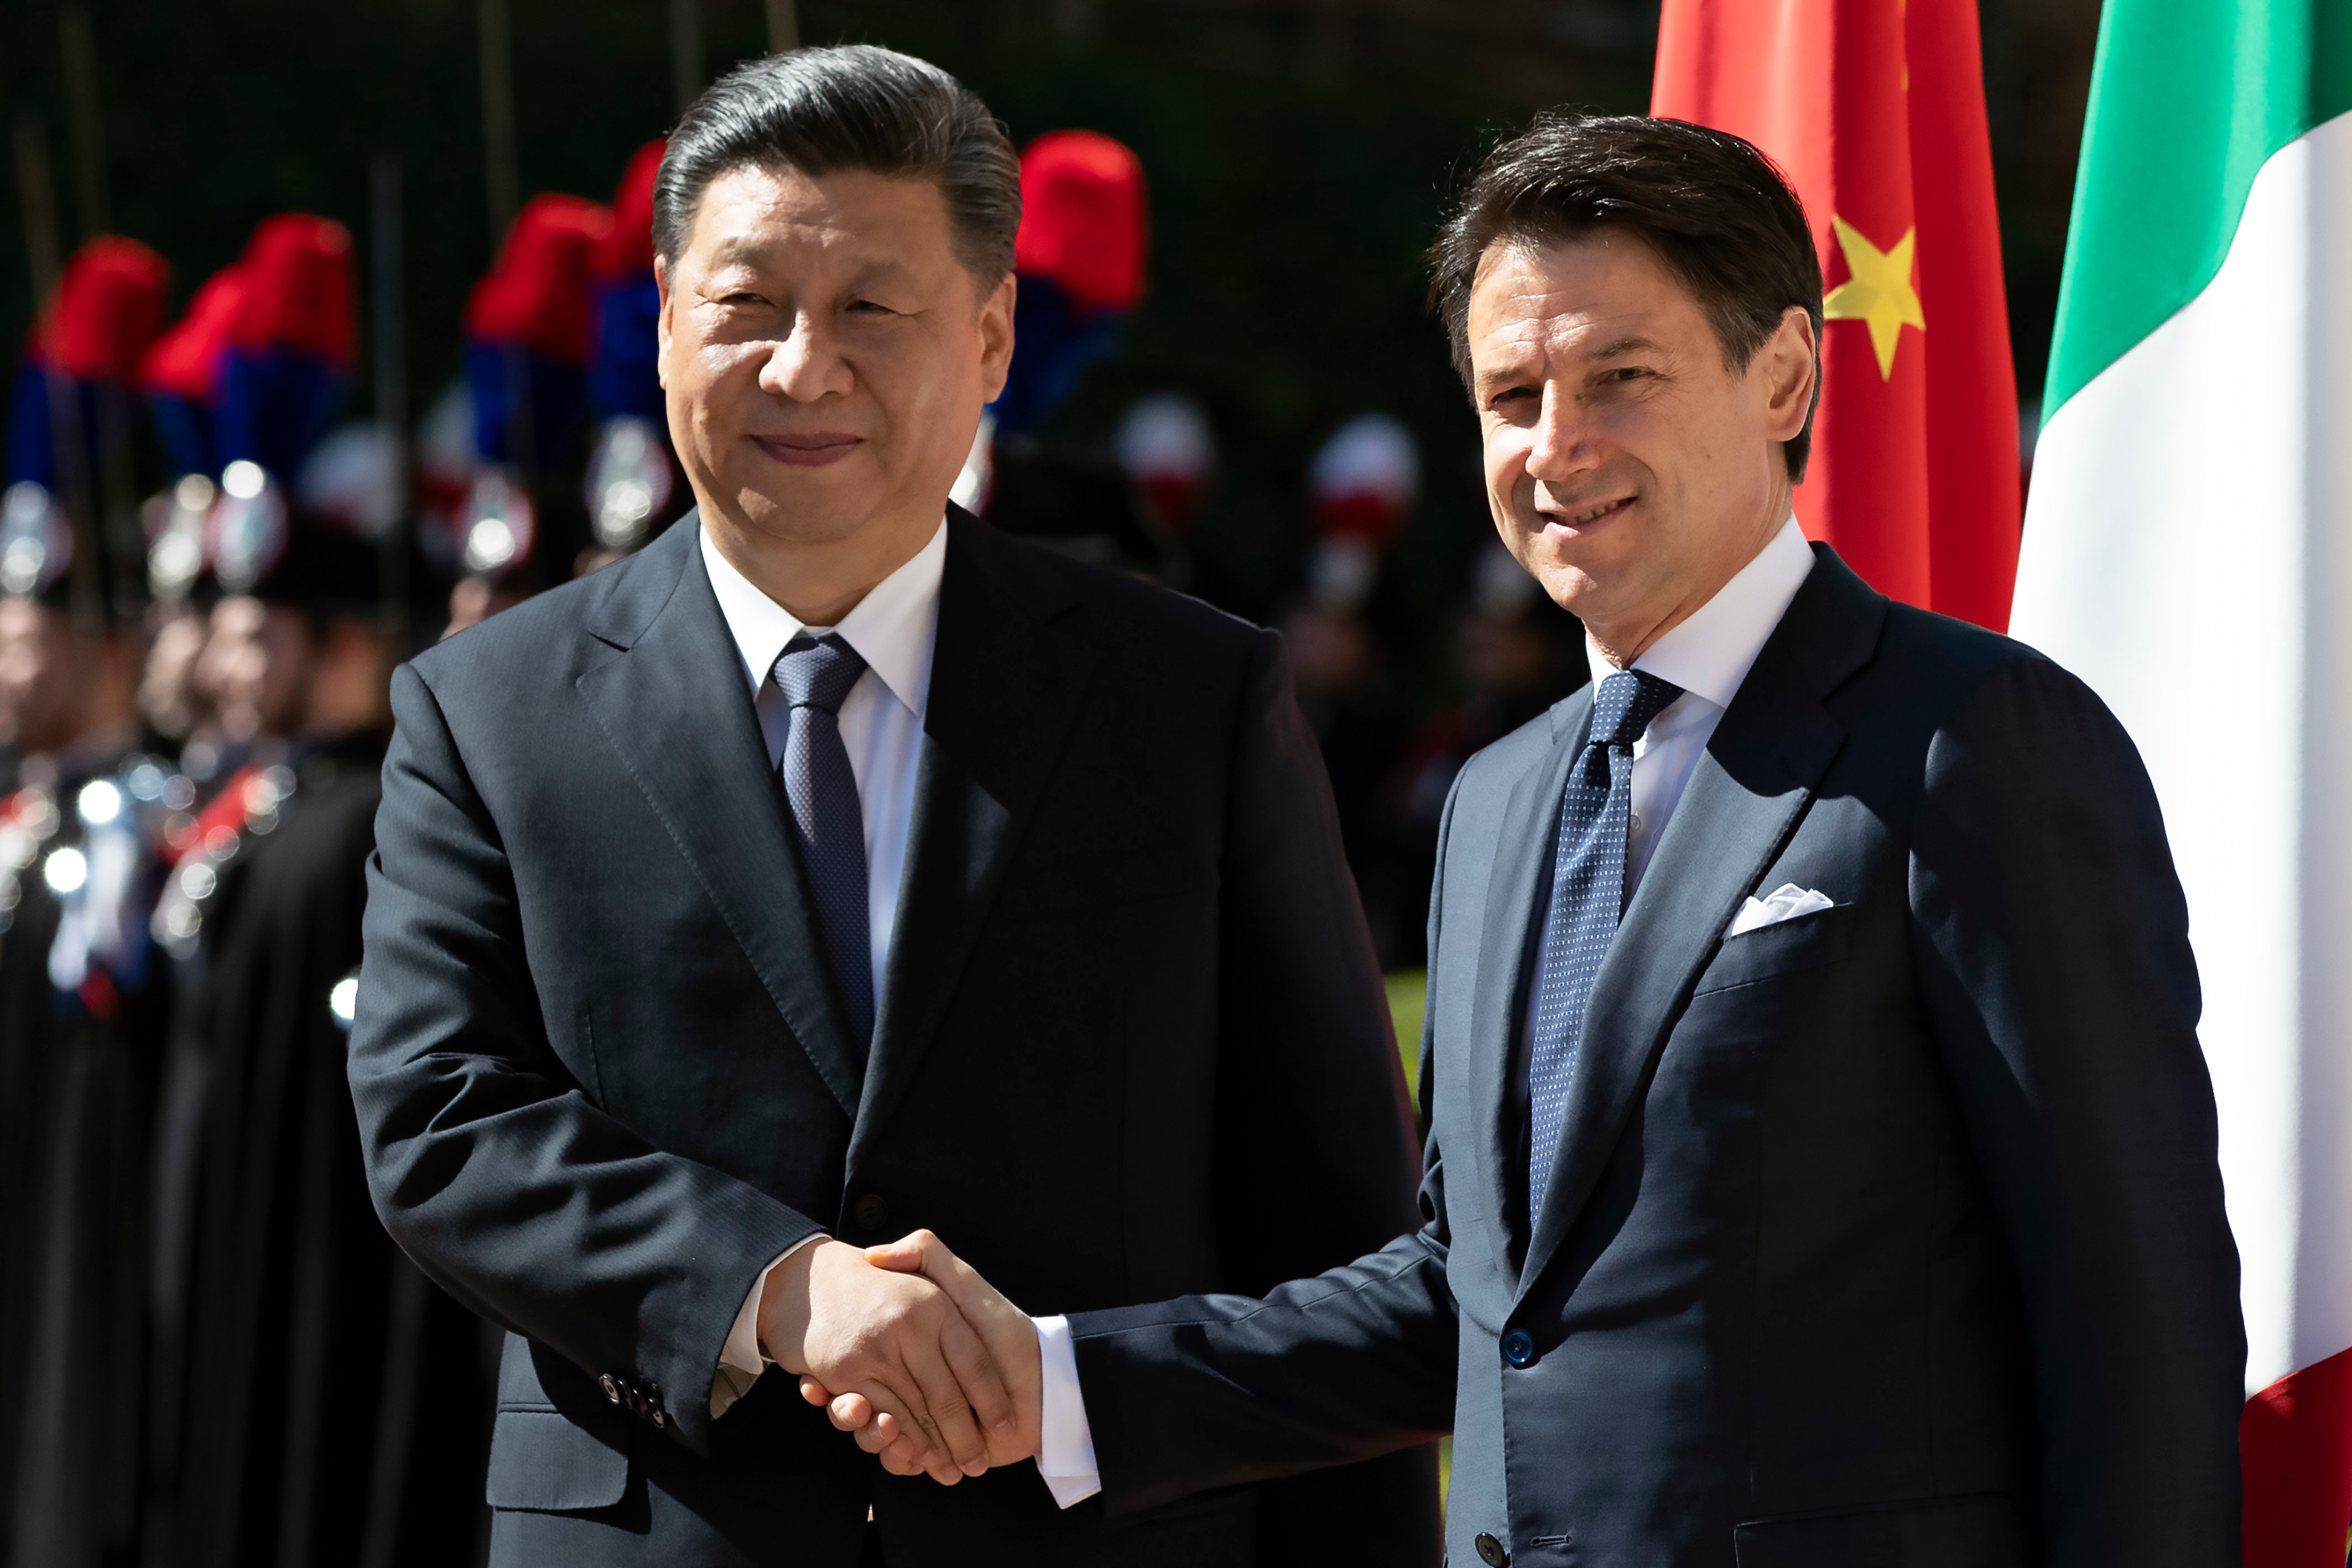 Italian premier Giuseppe Conte (R) and Chinese President Xi Jinping (L) during a welcome ceremony at the Villa Madama in Rome President of China Xi Jinping visit to Italy - 23 Mar 2019